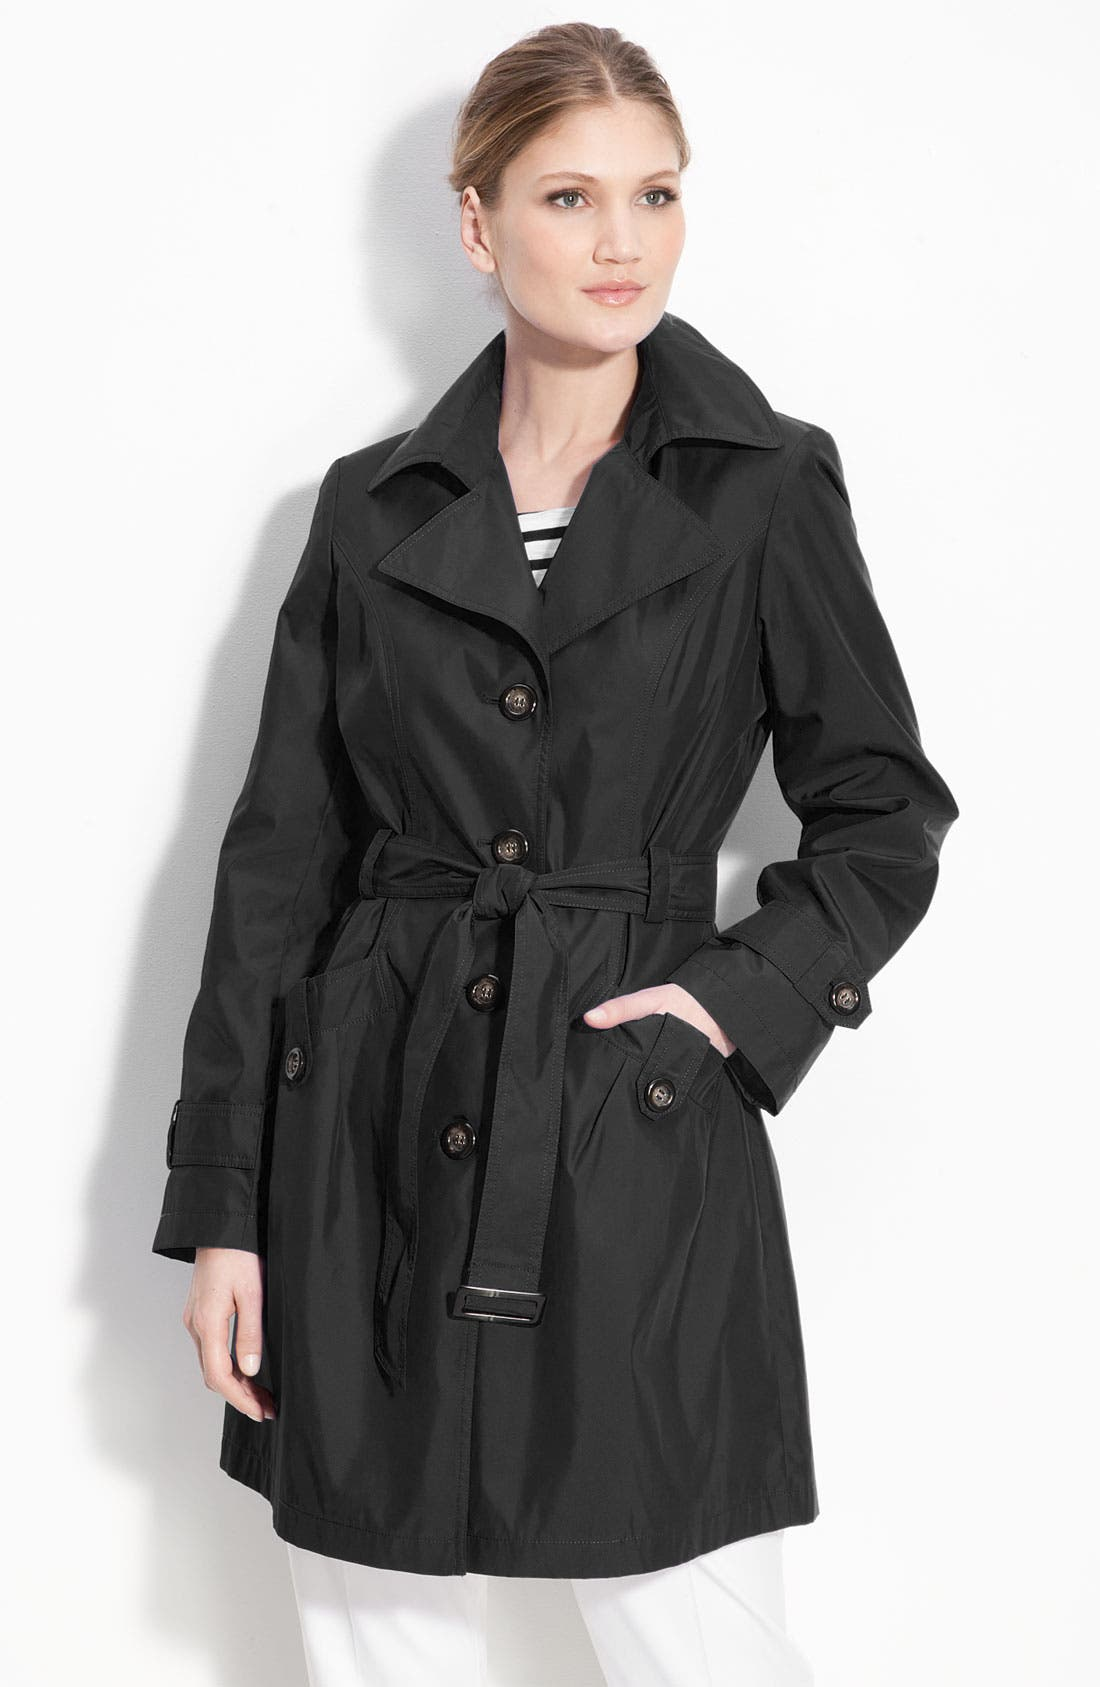 Single Breasted 'Memory' Trench Coat,                             Main thumbnail 1, color,                             001